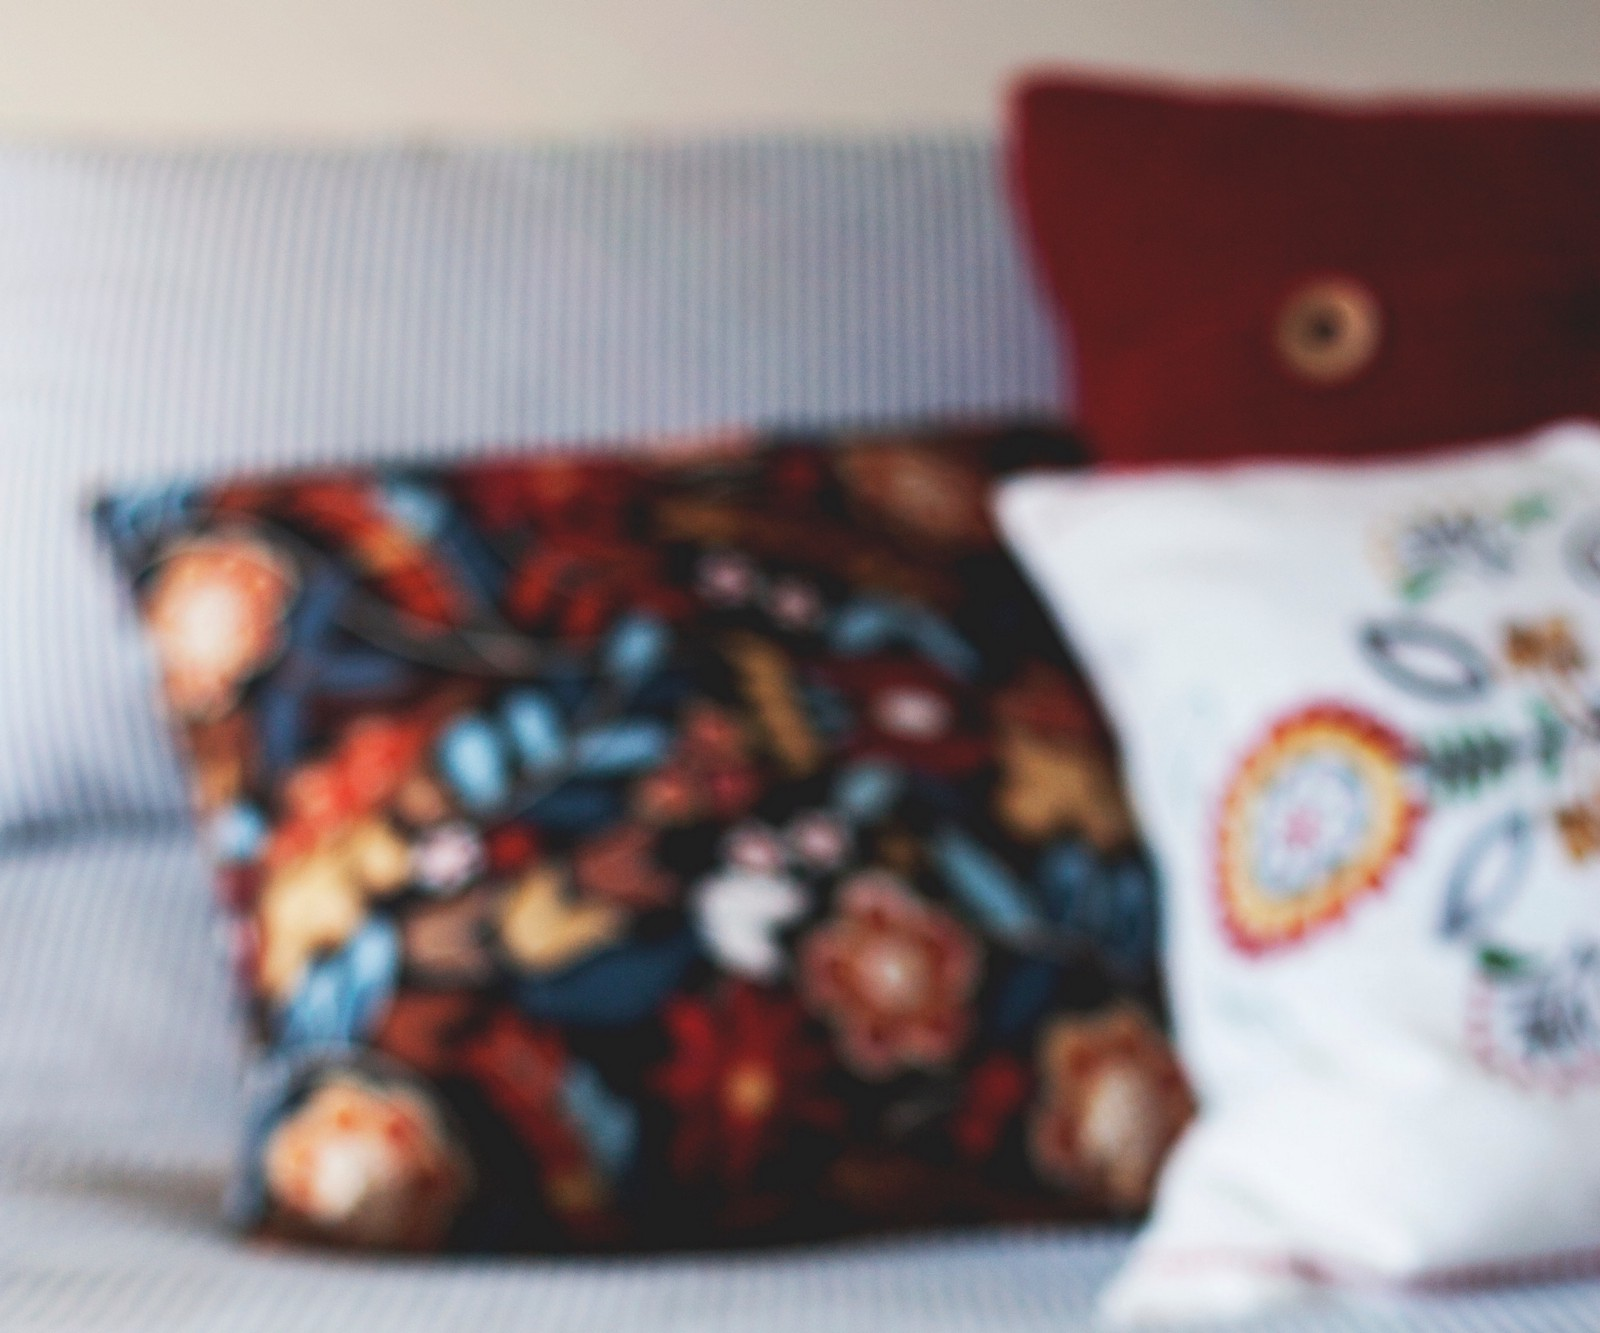 international put a pillow on your fridge day sugartrends blog